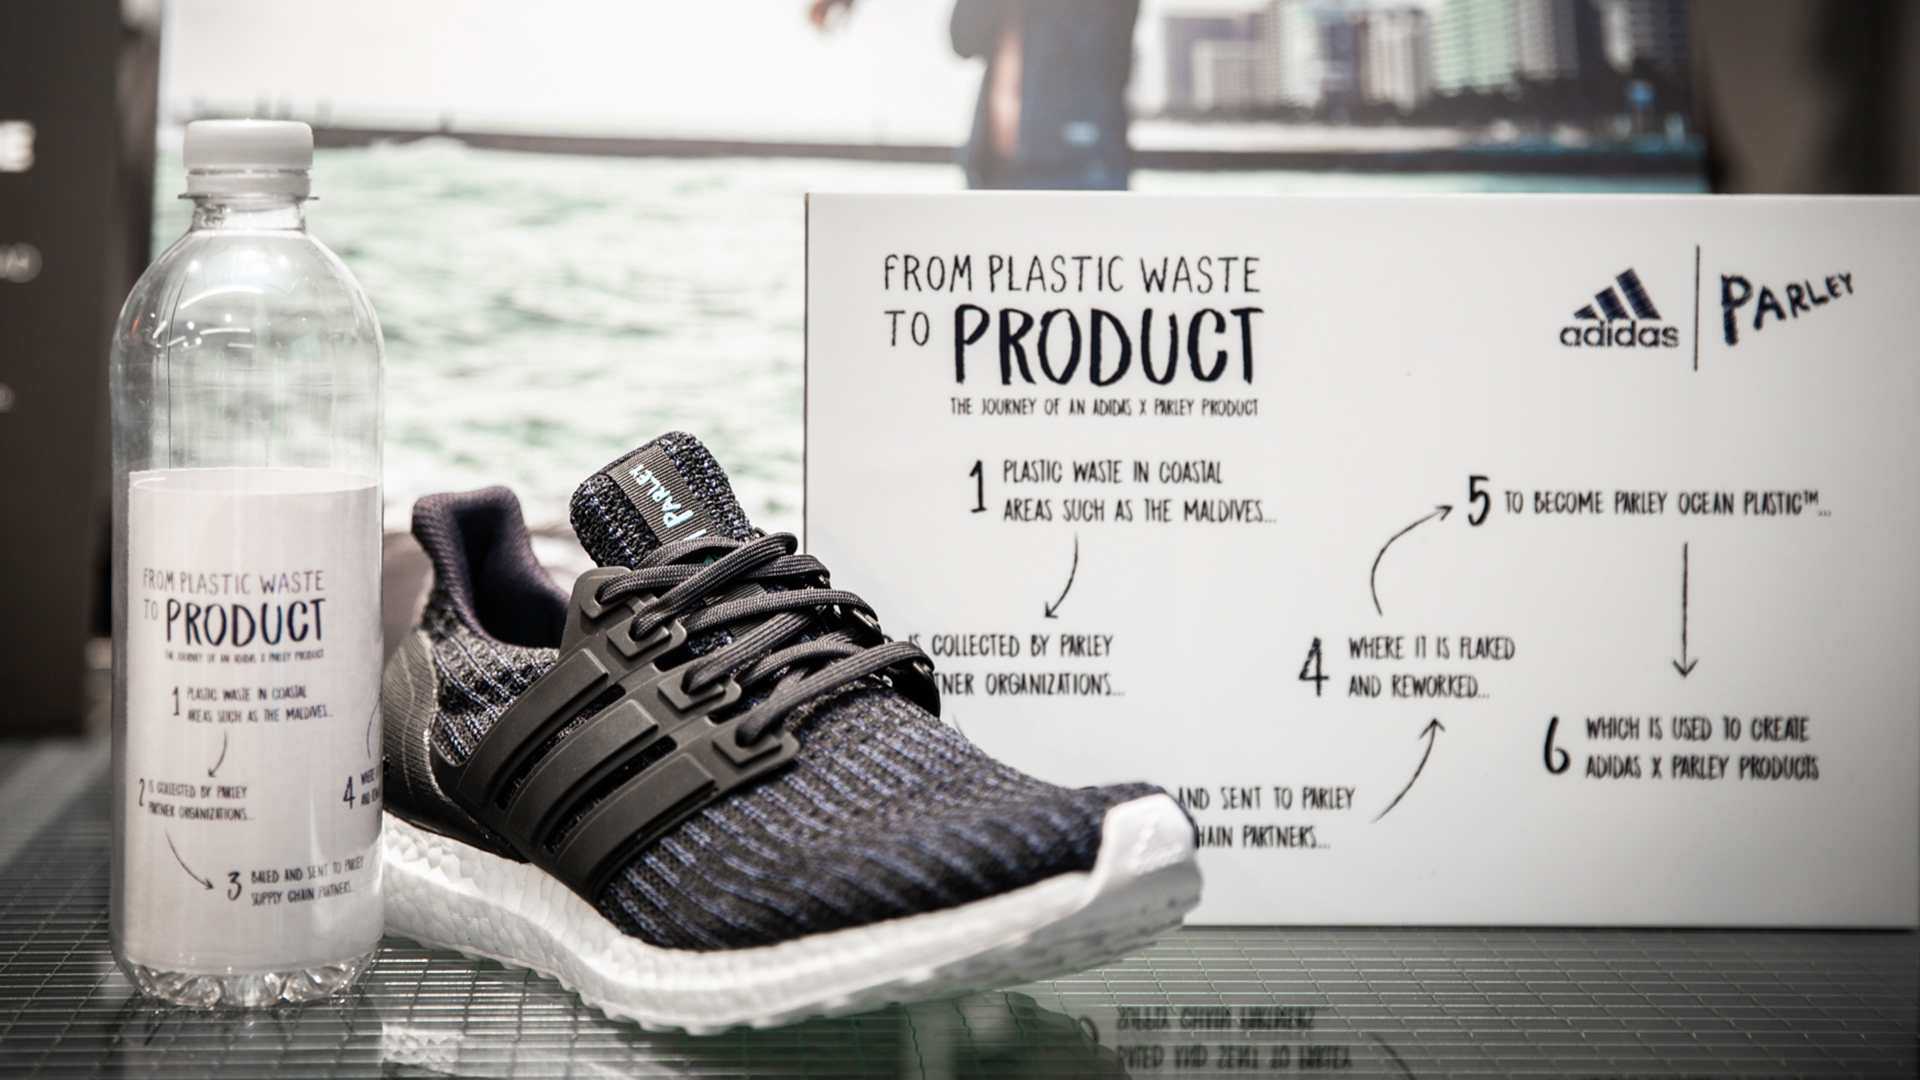 adidas - Parley | The North Alliance